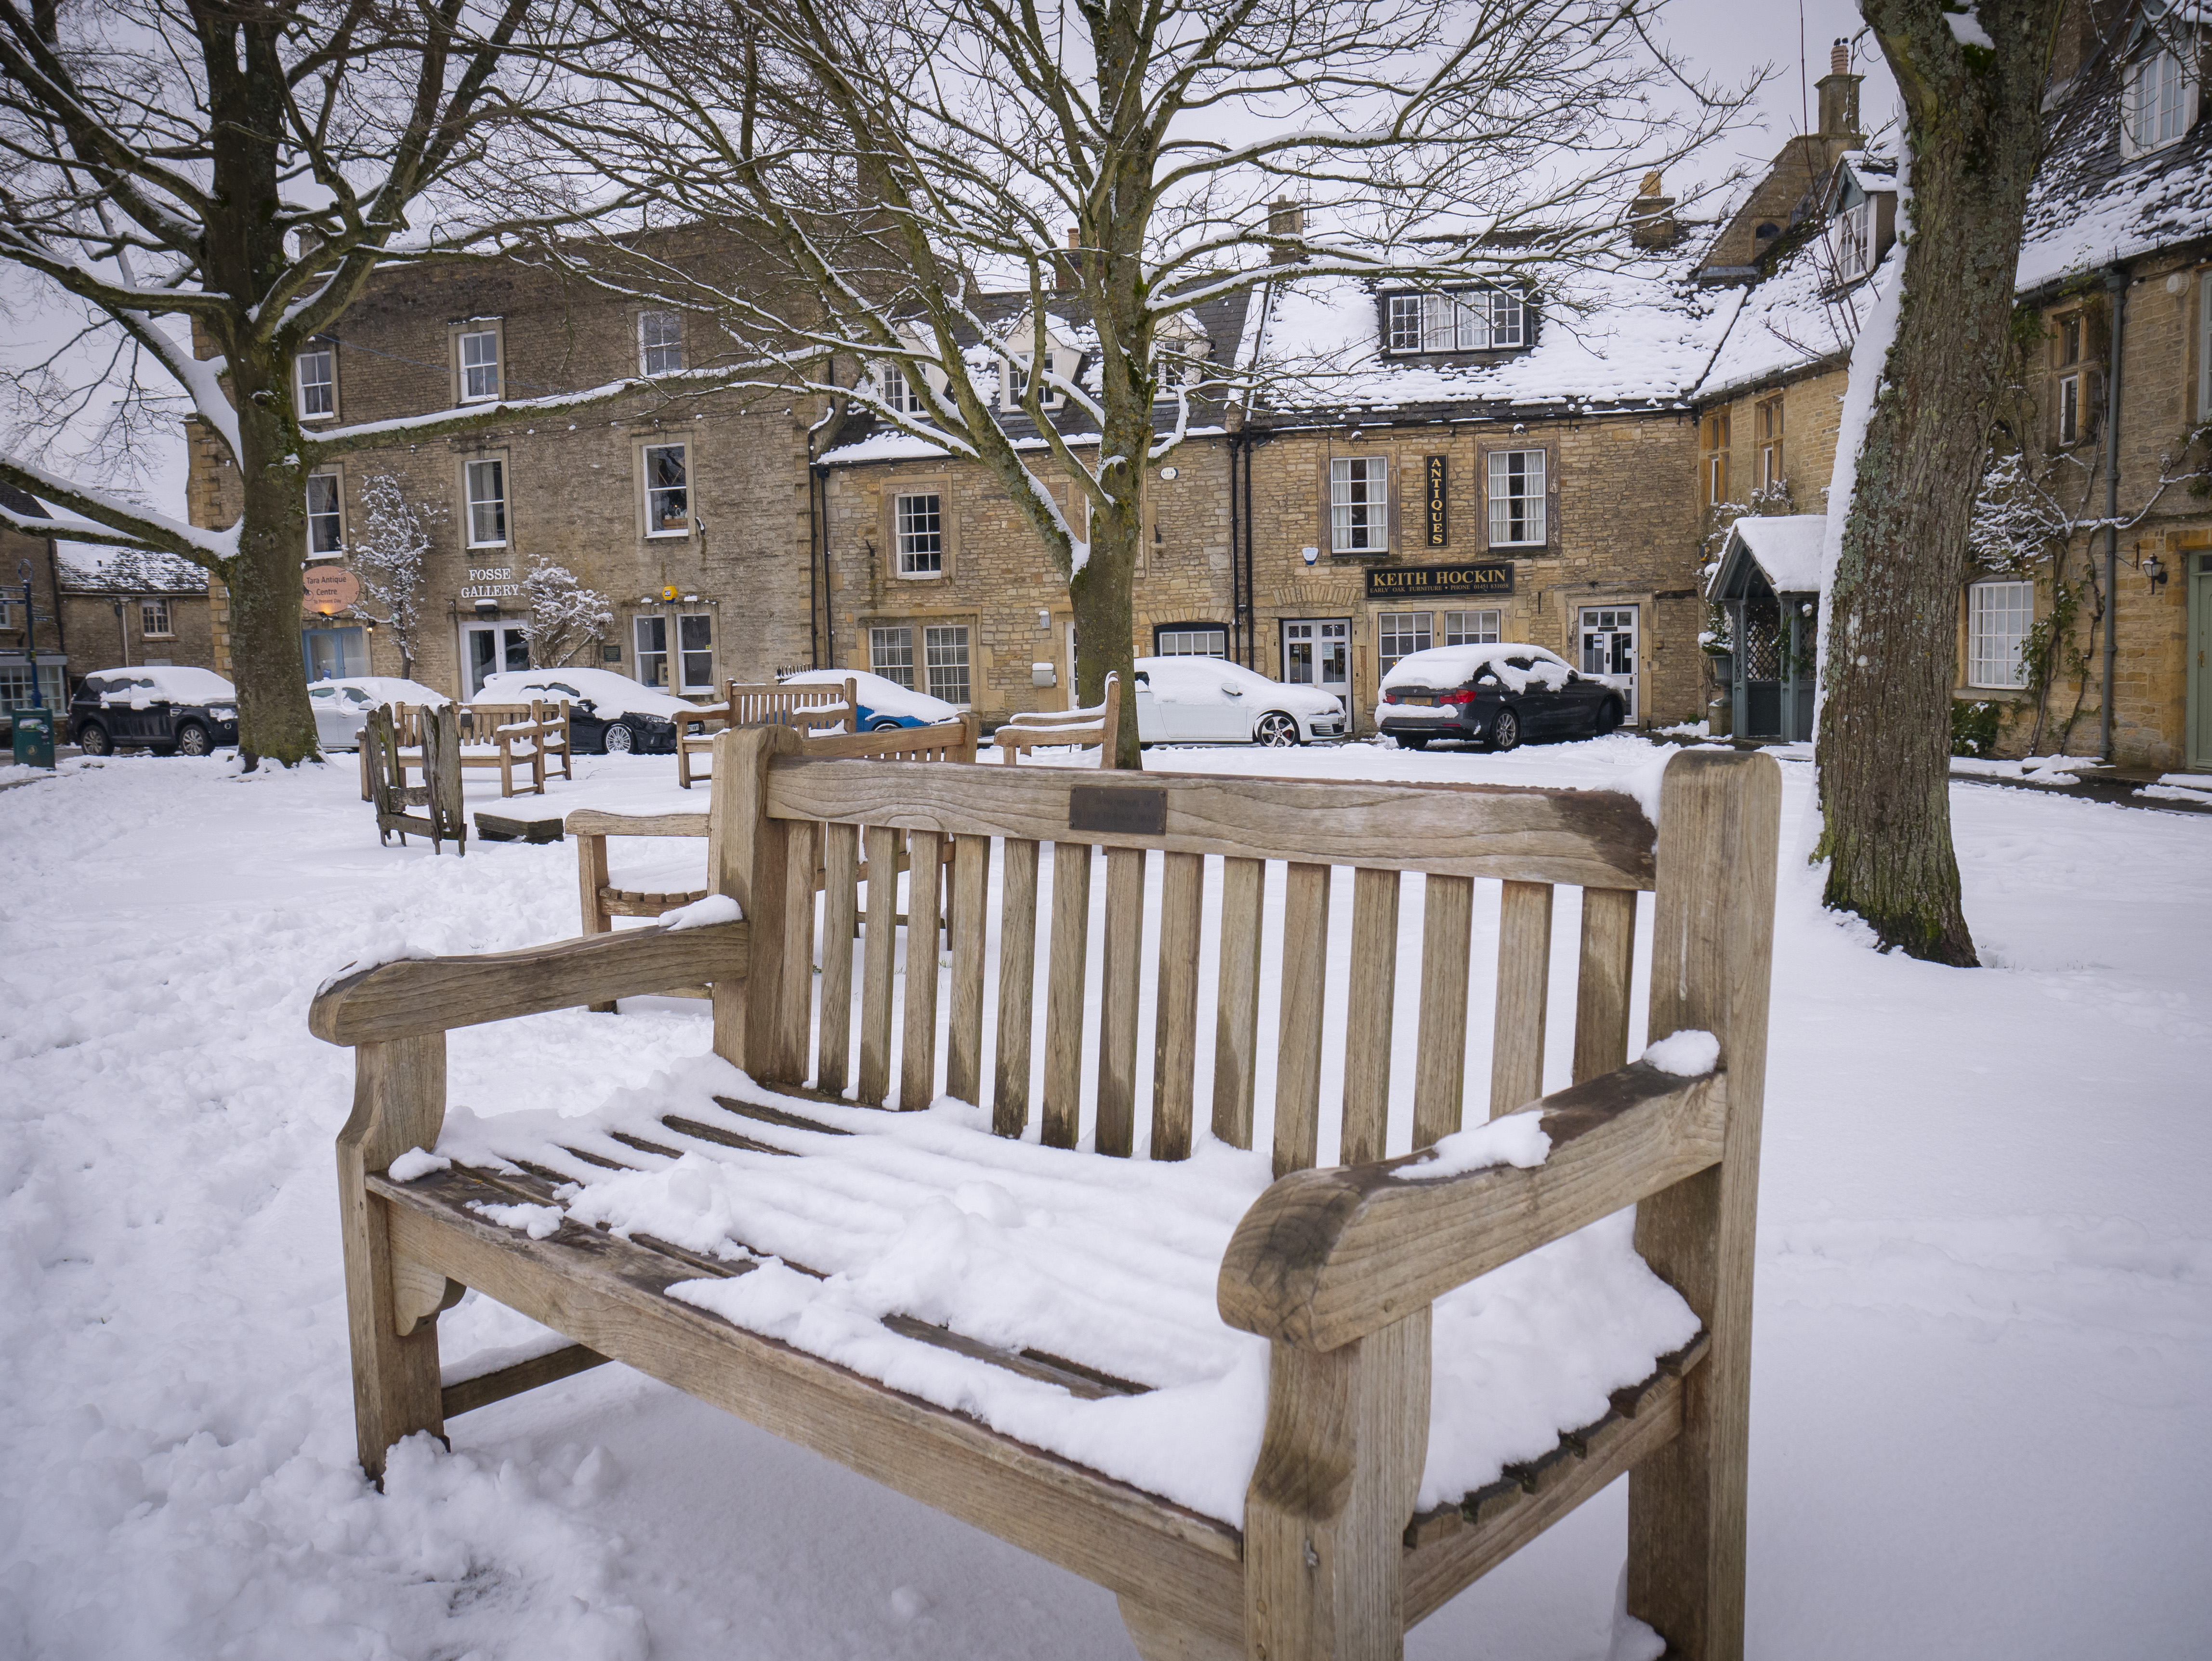 These snow-covered benches in Stow must have some stories to tell...